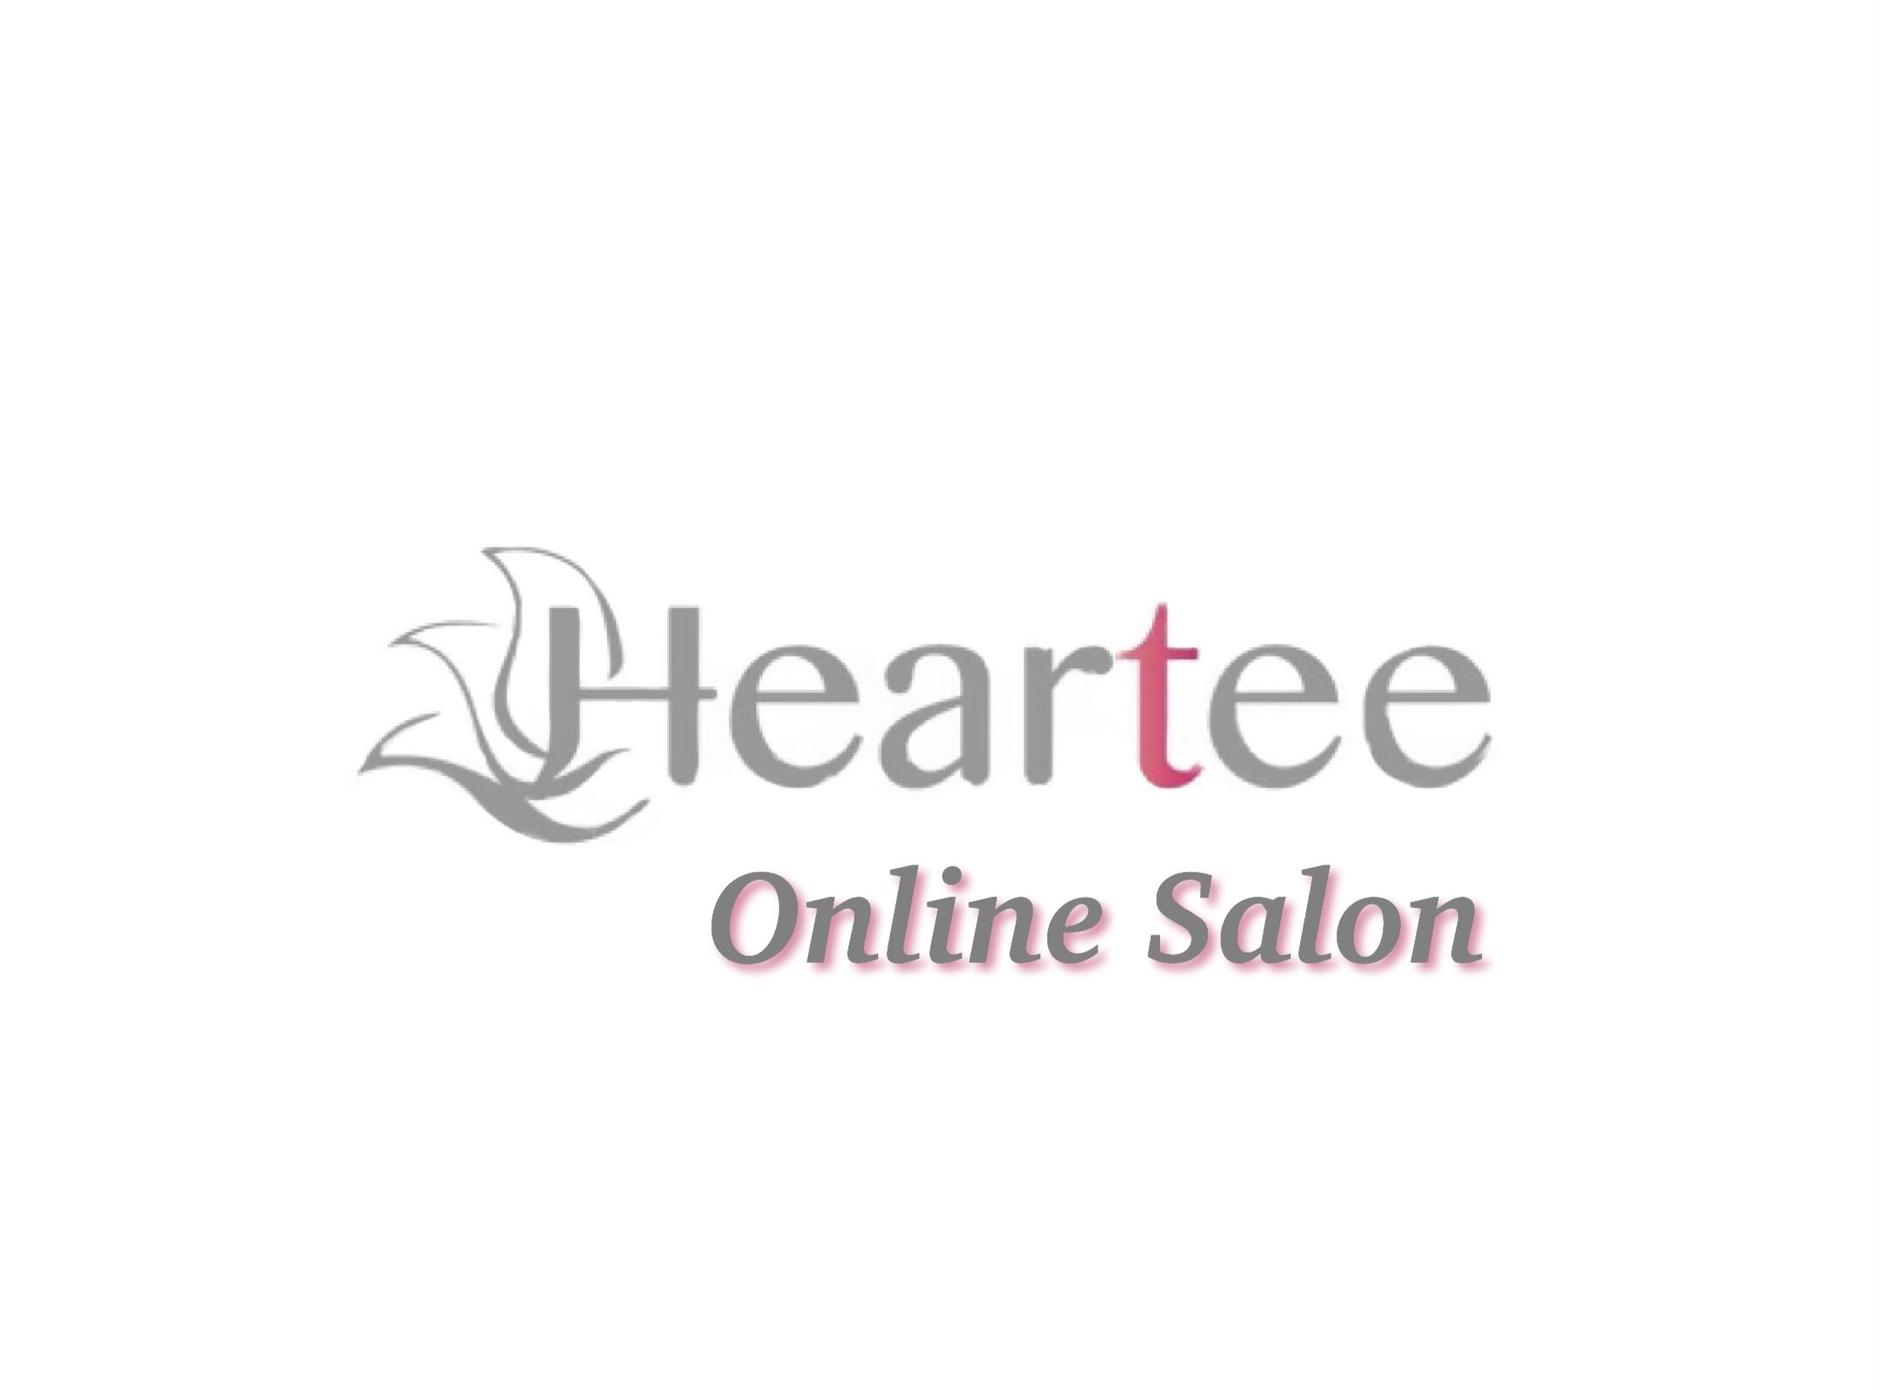 Heartee Salon